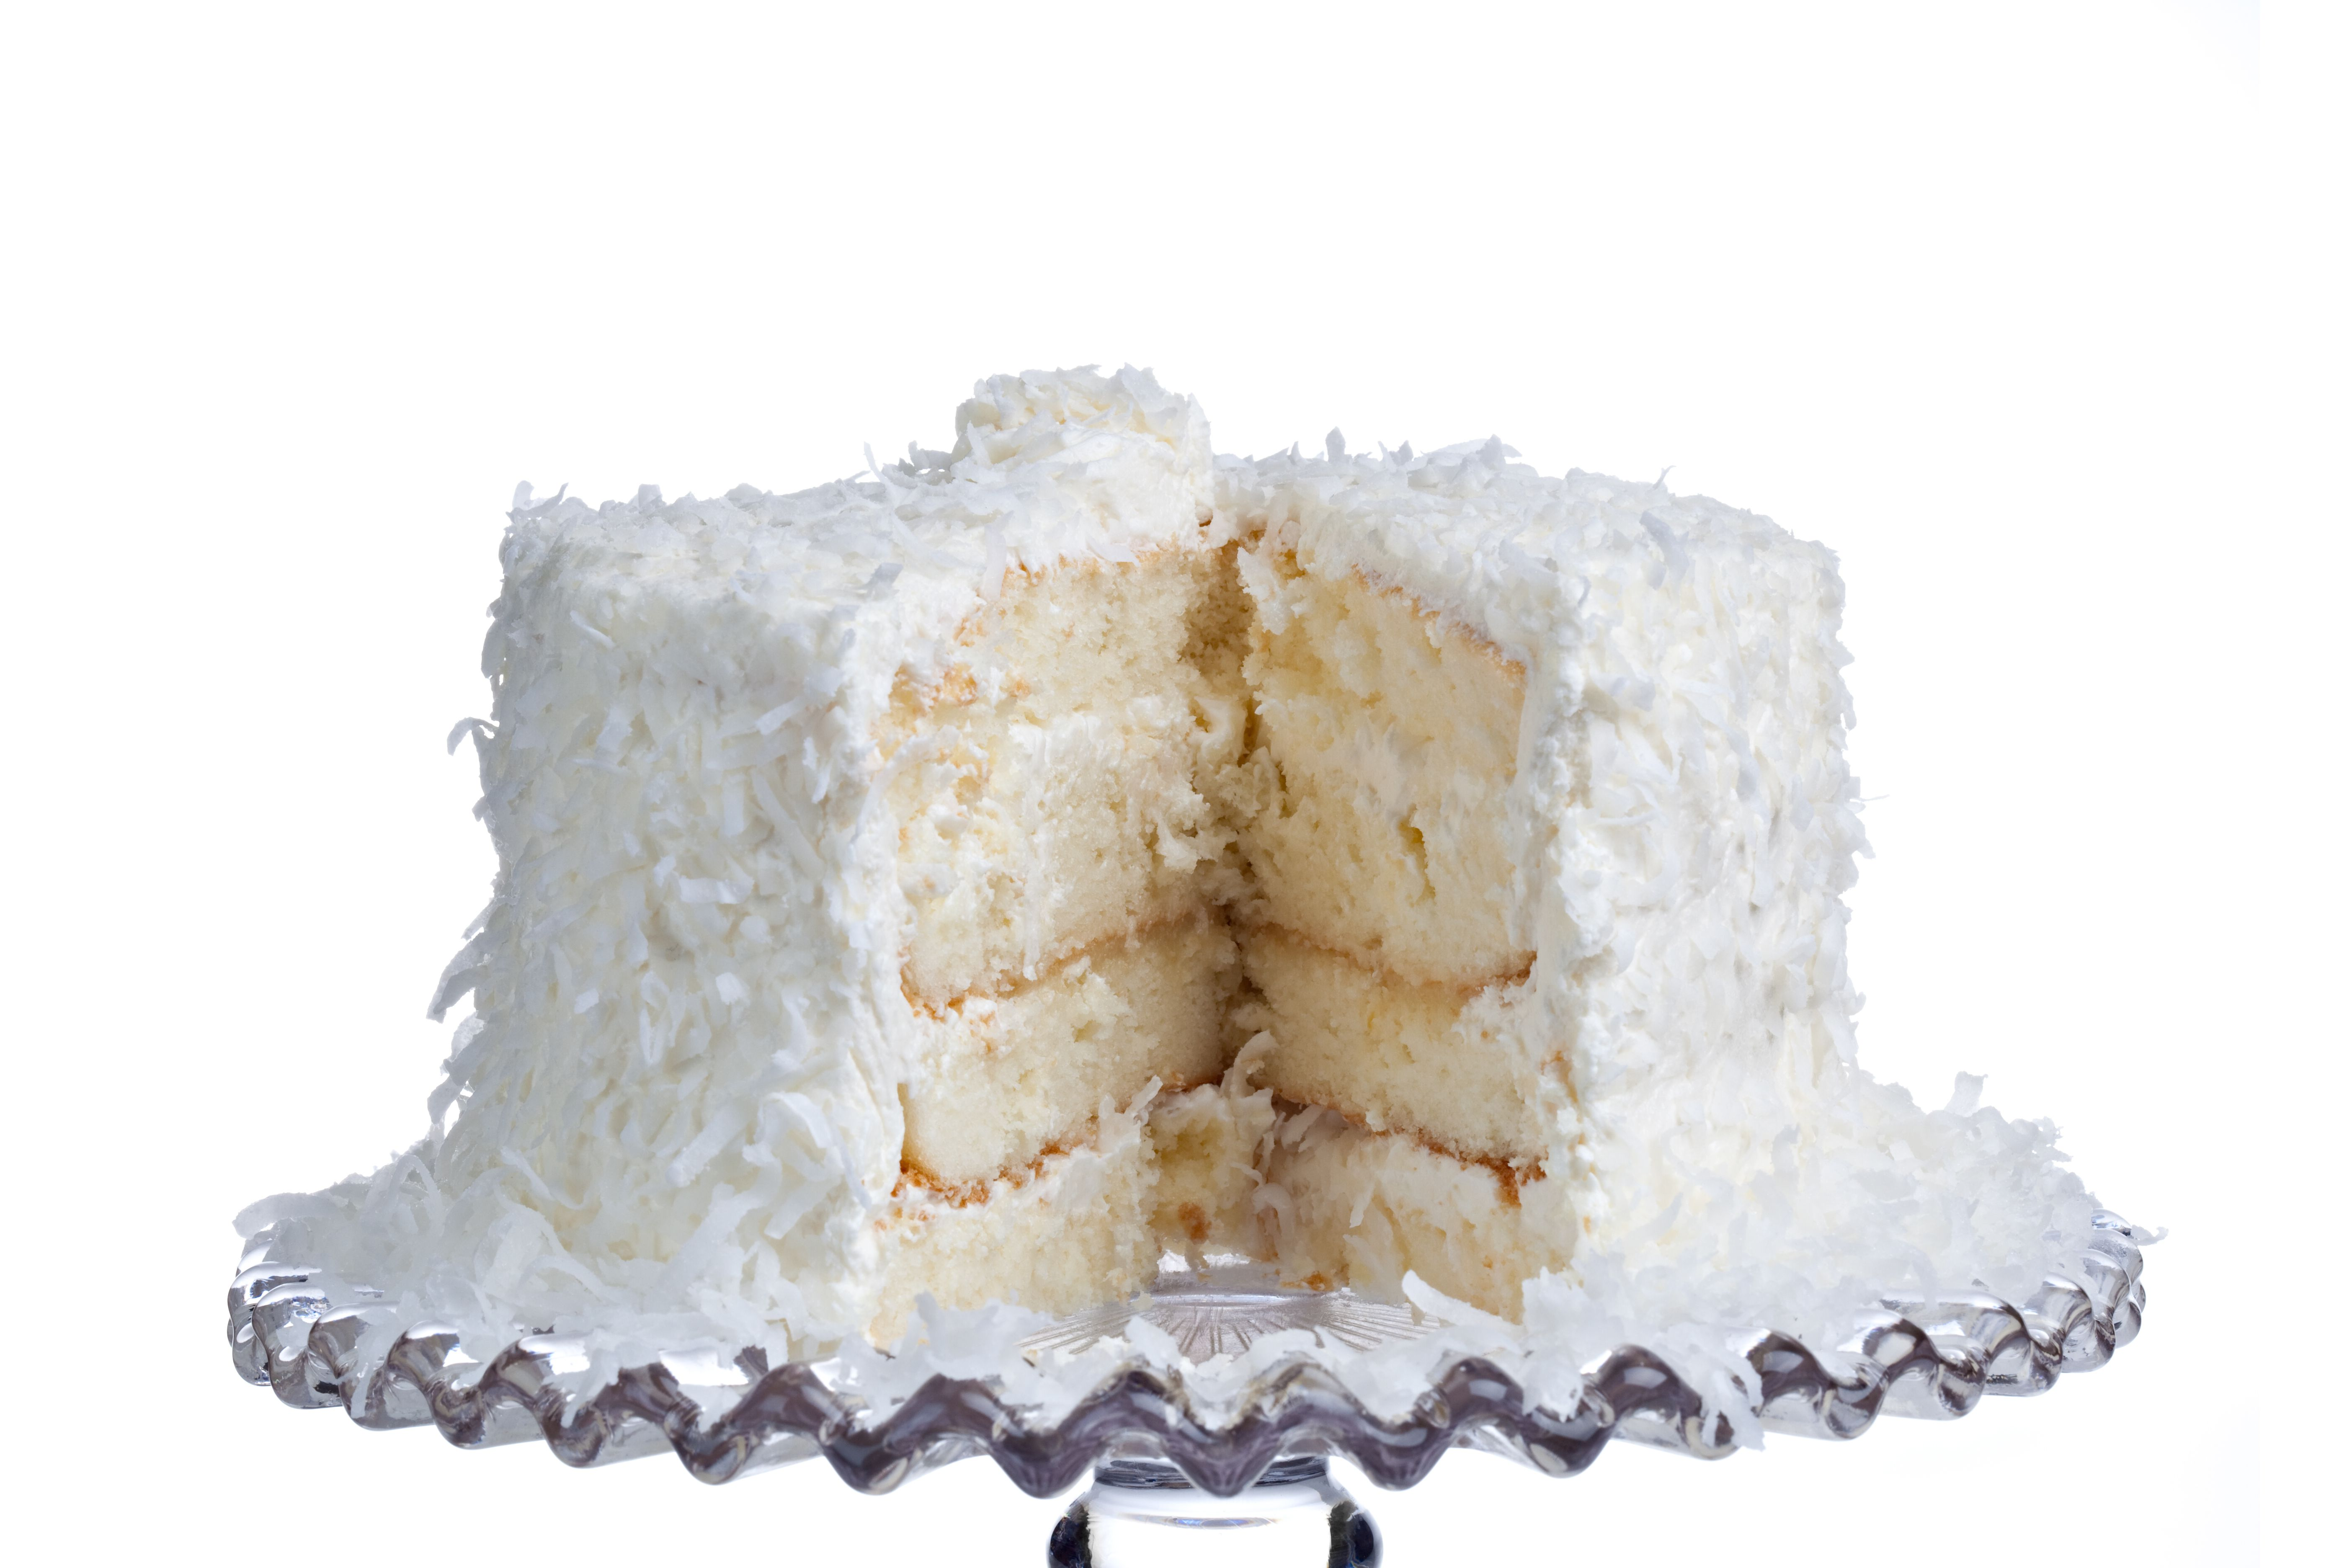 Cake Icing Recipe In Urdu: Coconut Cake Recipe With Fluffy Coconut Icing